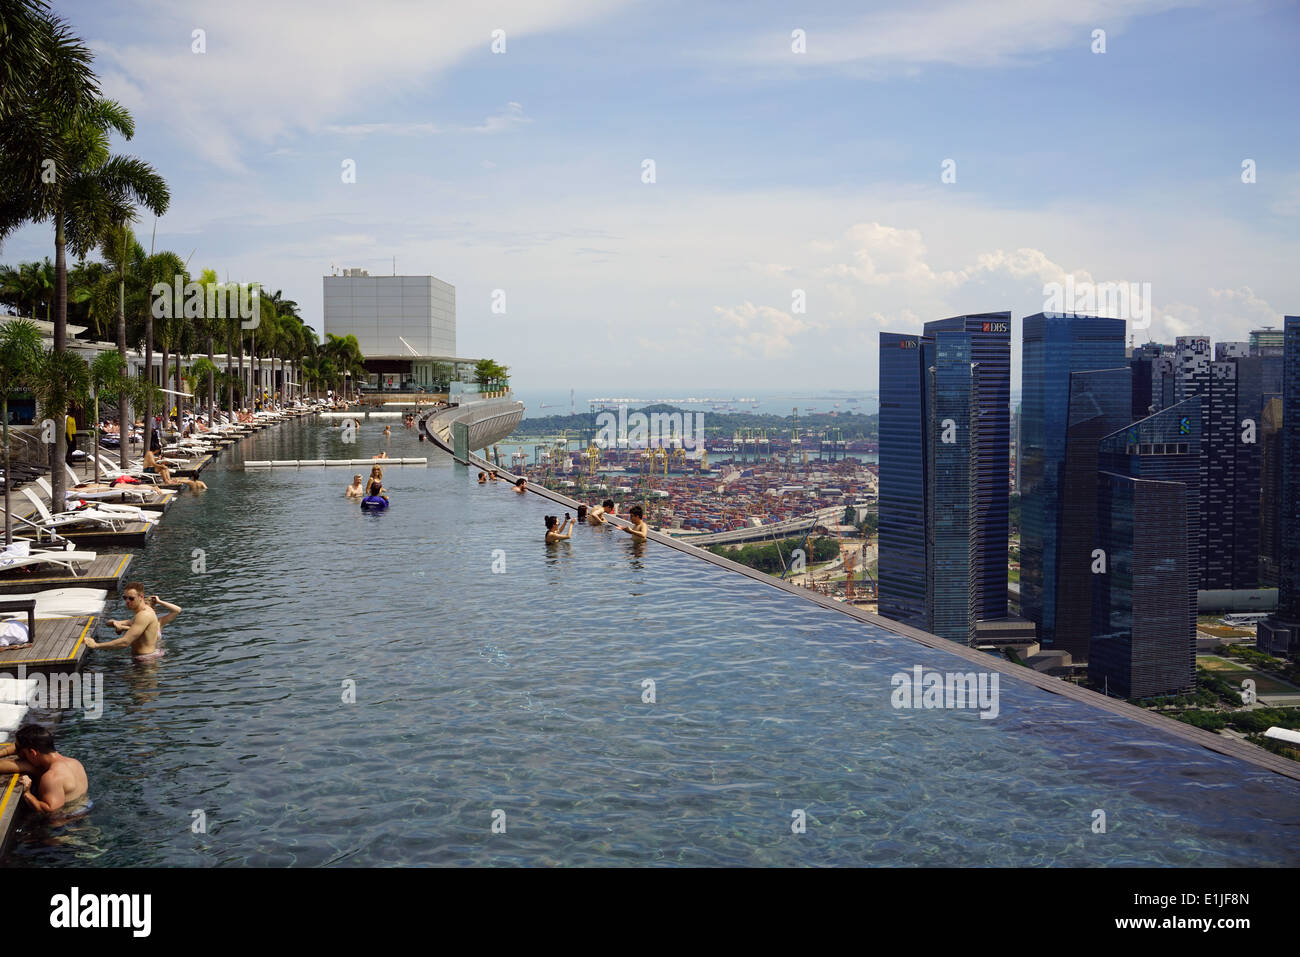 The Sky Park infinity swimming pool on the 57th floor of Marina Bay Sands Hotel - Stock Image